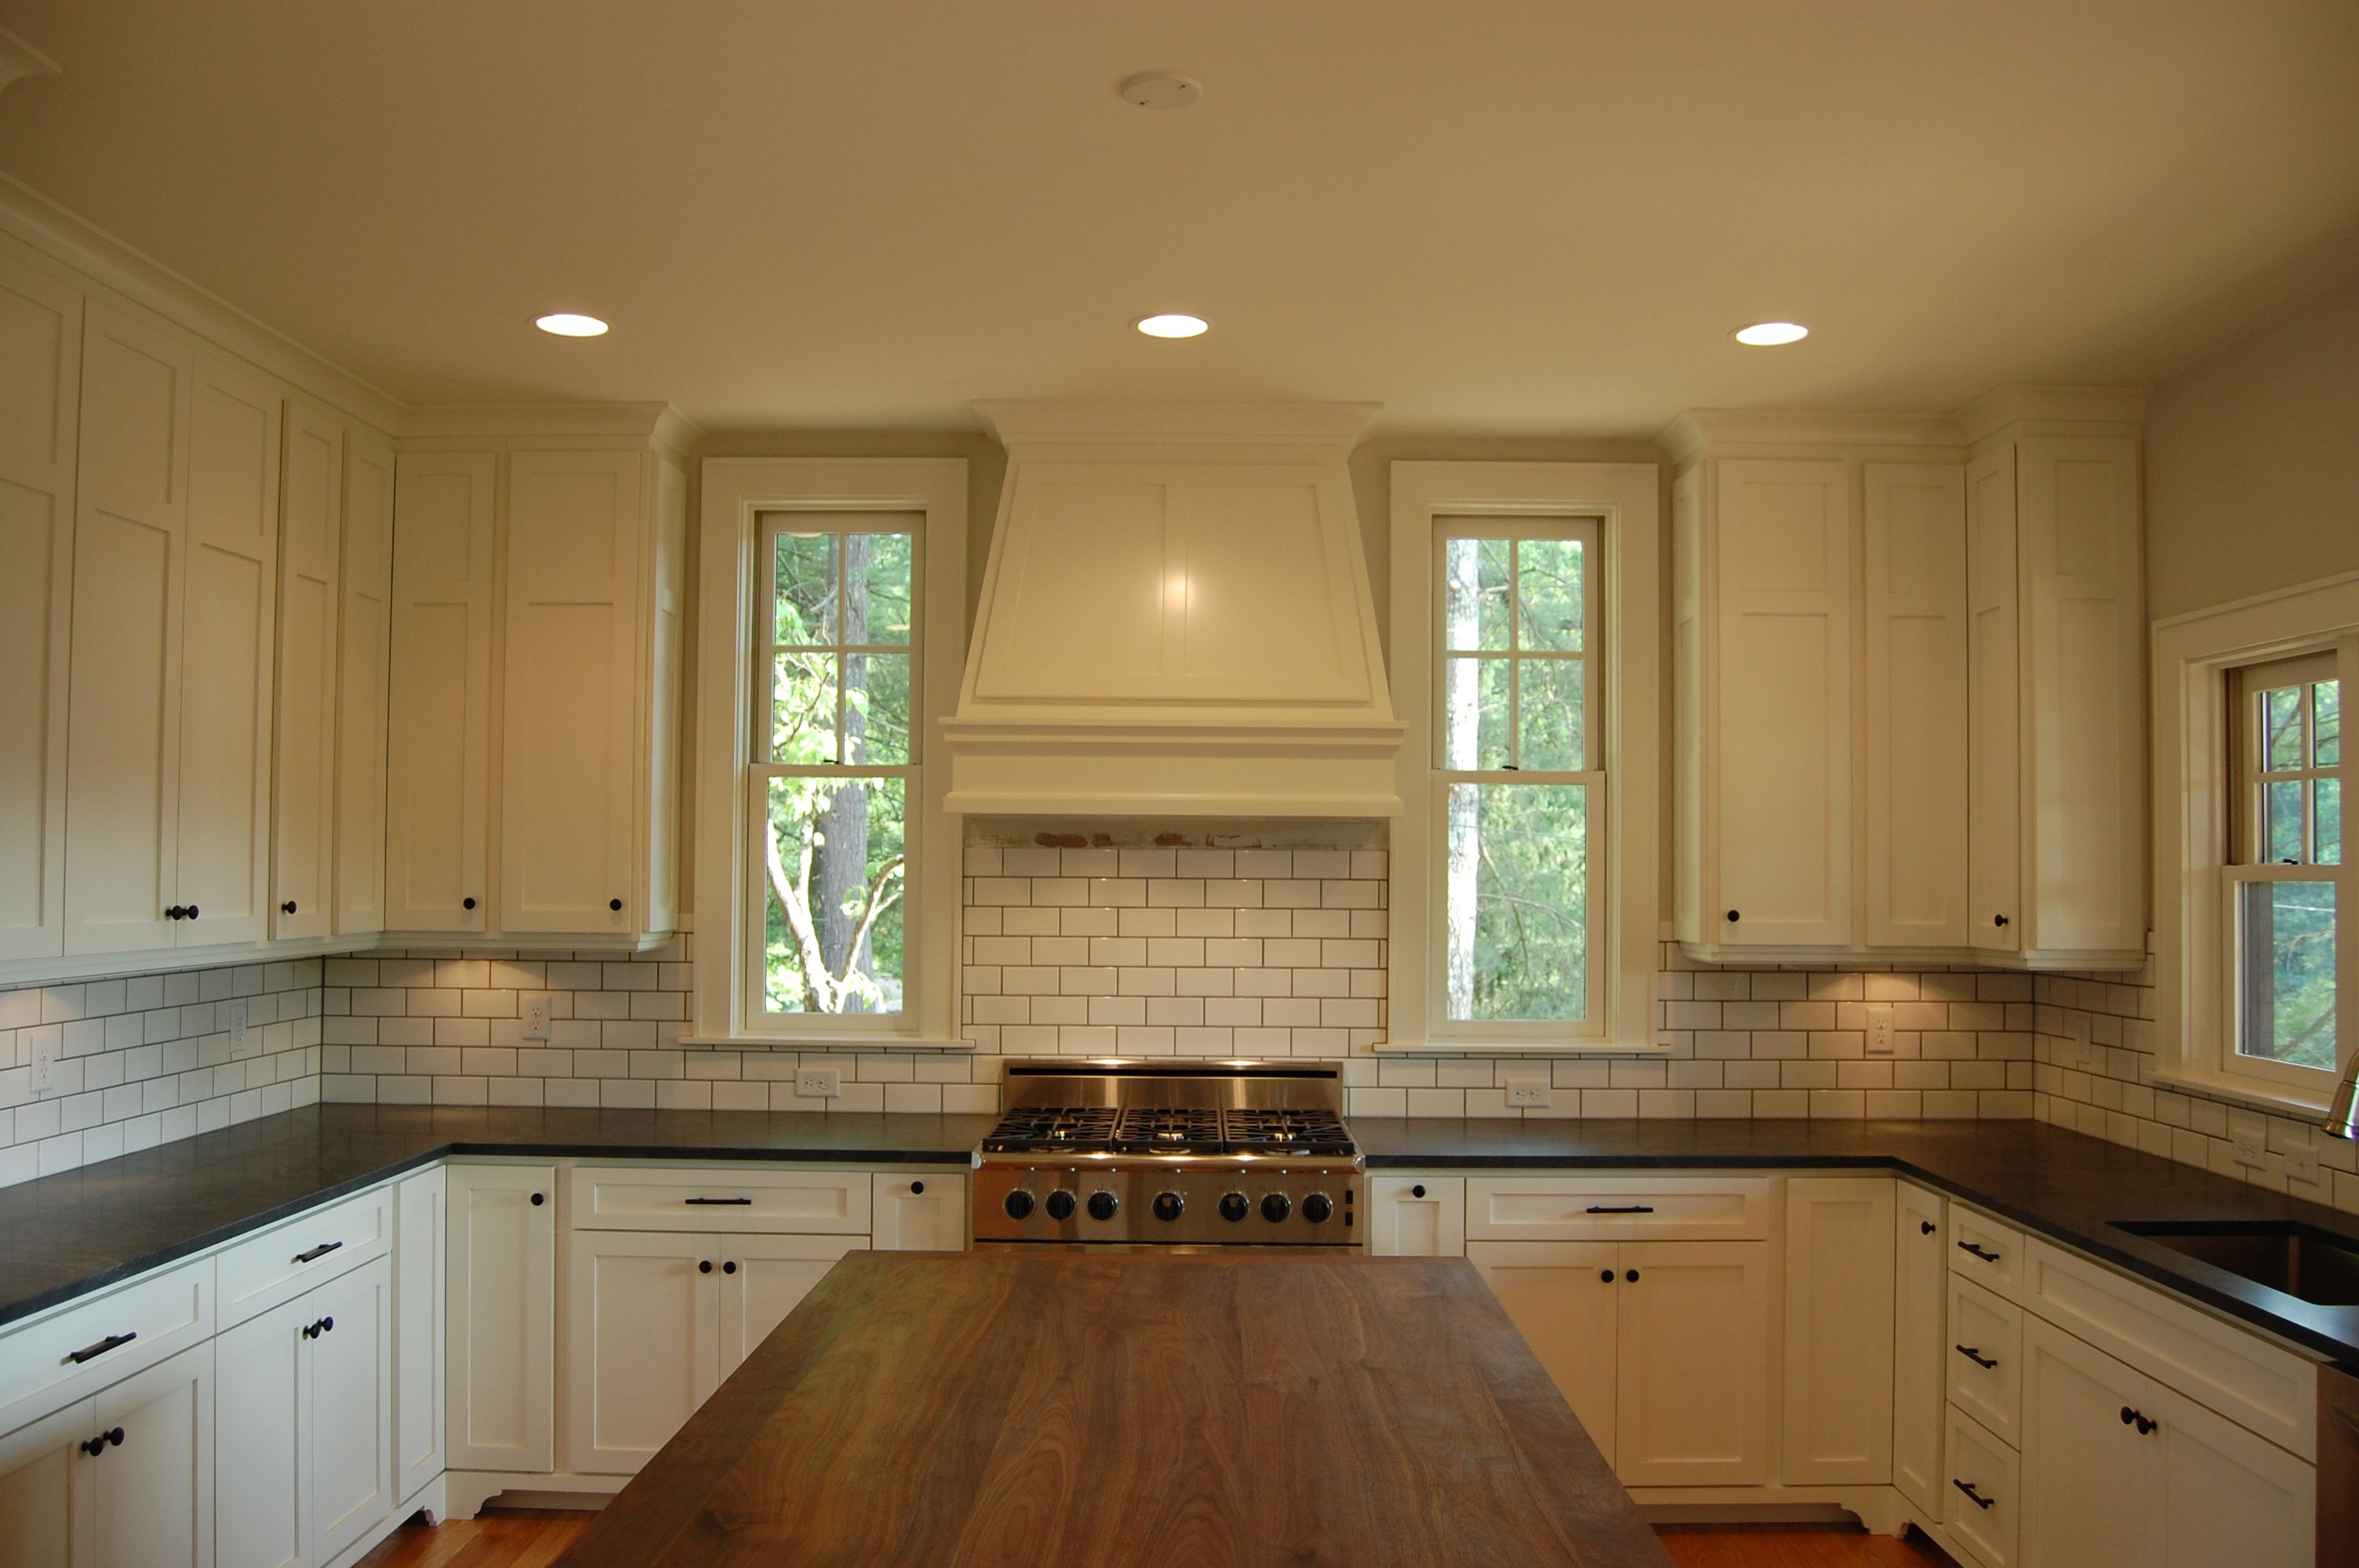 Best Benjamin Moore White Dove Paint On Cabinets Honed Virginia 400 x 300